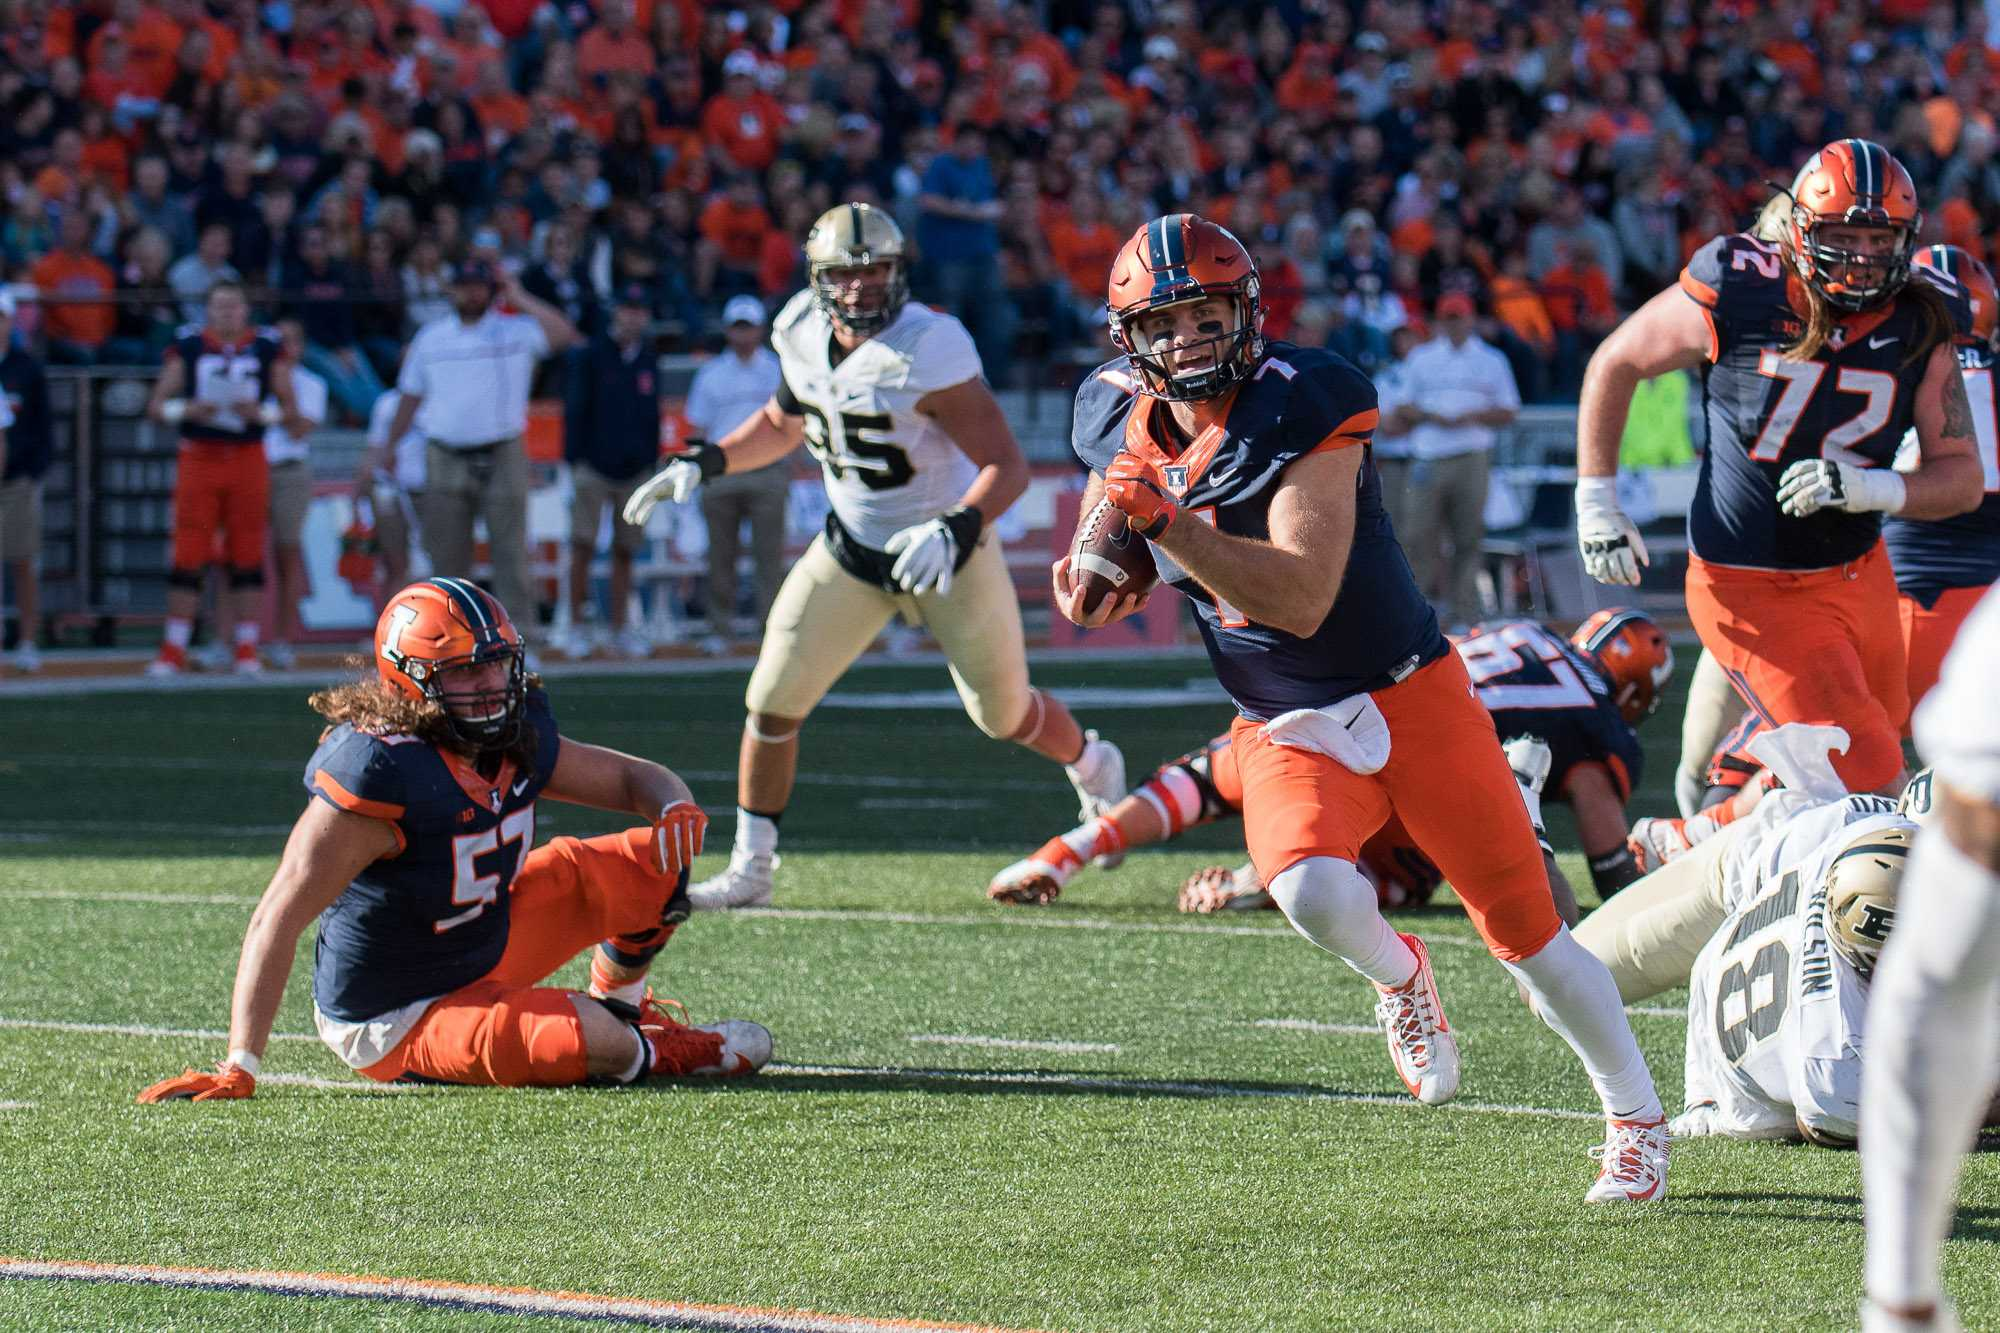 Illinois quarterback Chayce Crouch runs for a touchdown in the game against Purdue at Memorial Stadium on October 8. The Illini lost 34-31.